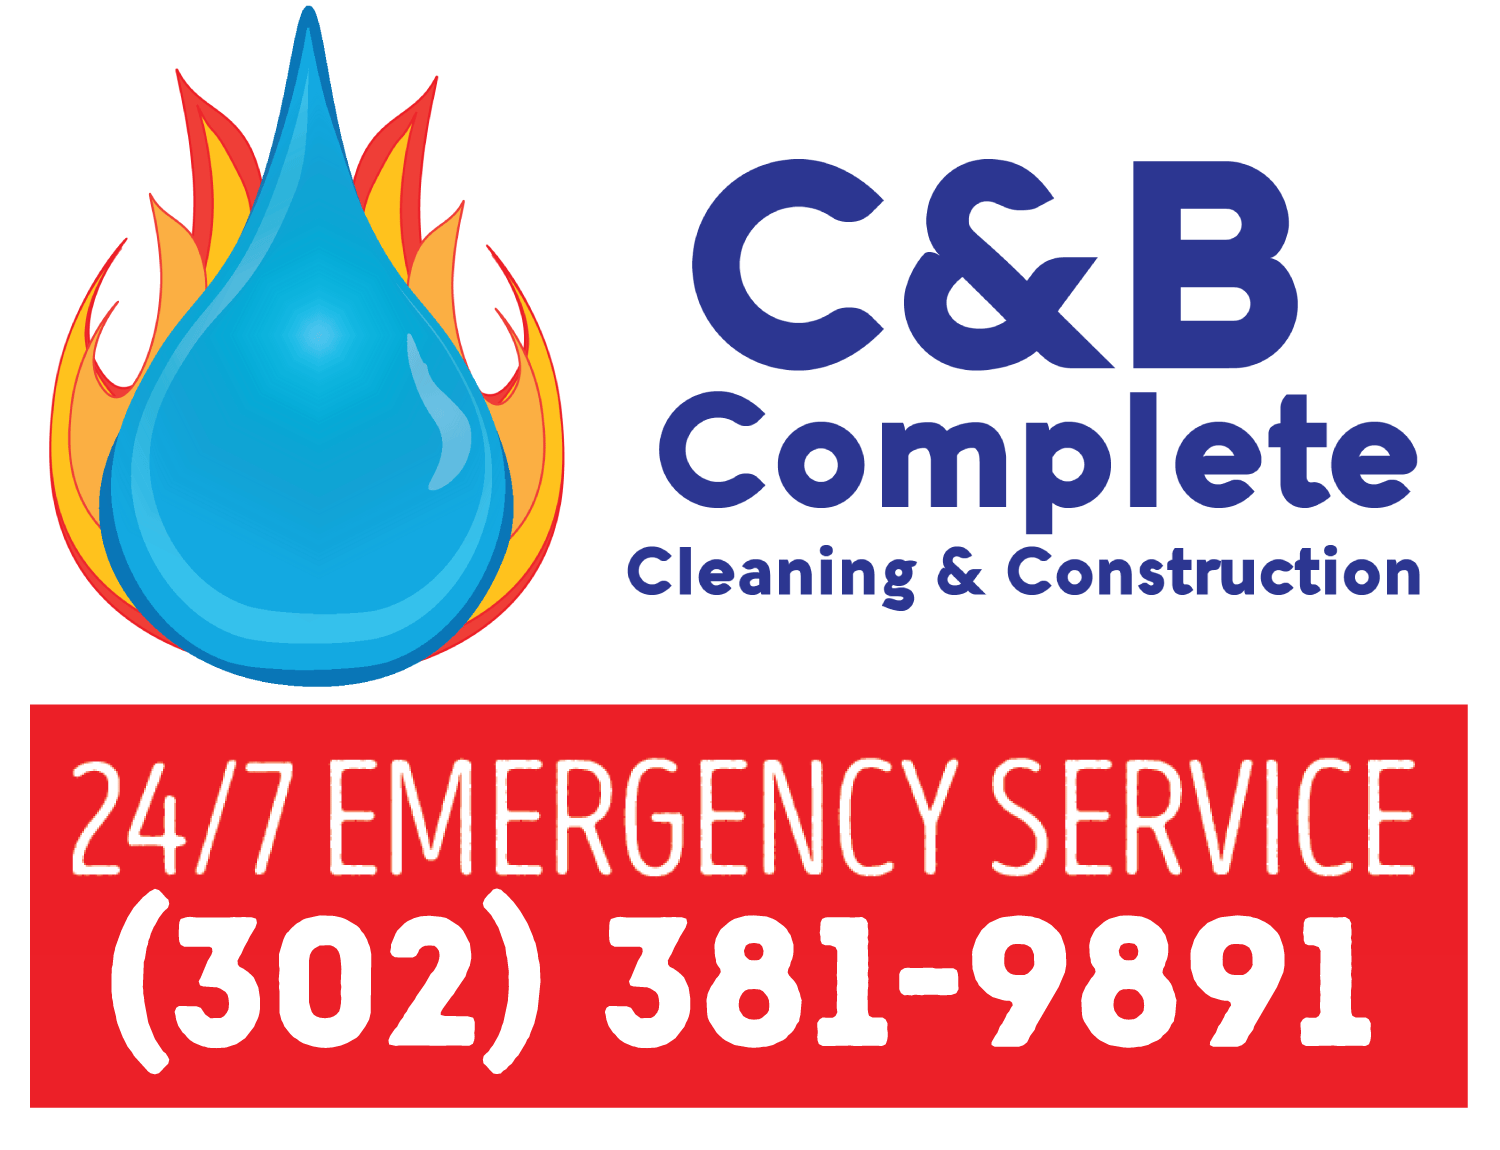 C&B Complete Cleaning & Construction